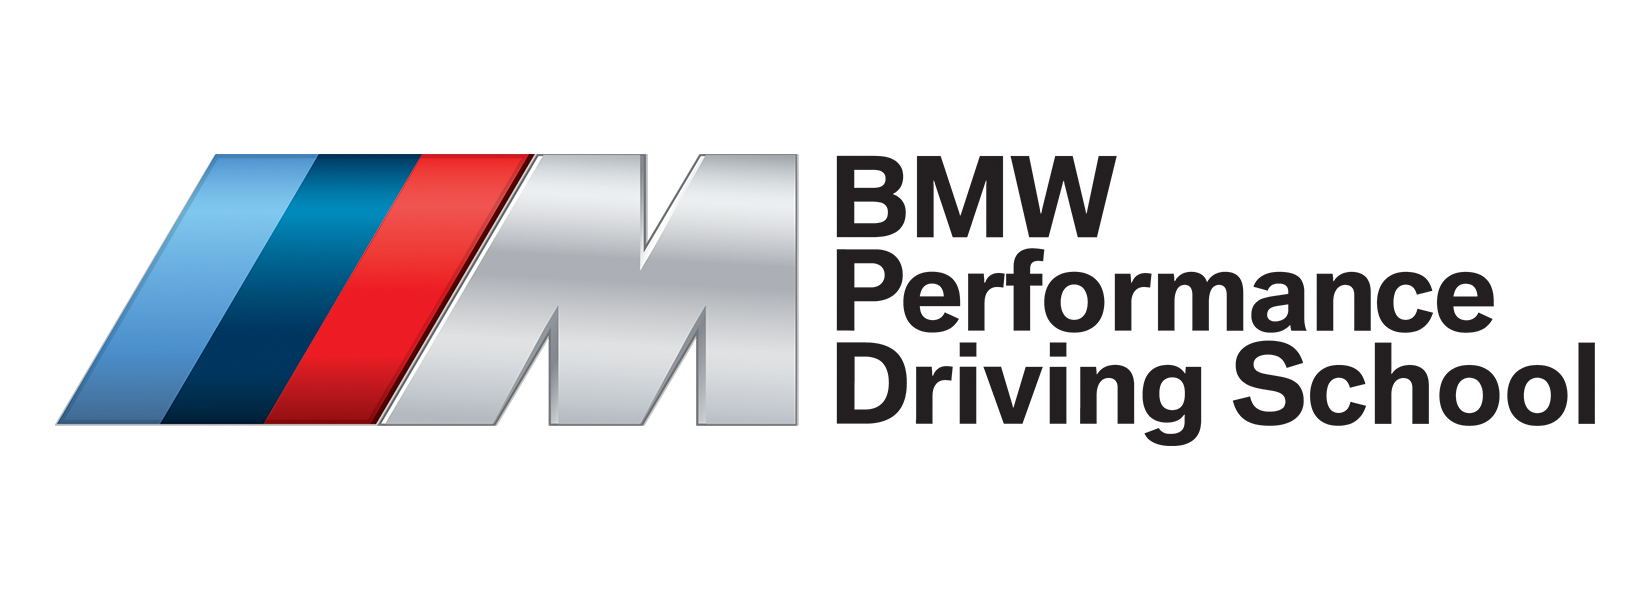 BMW Performance Driving School >> Special Olympics South Carolina